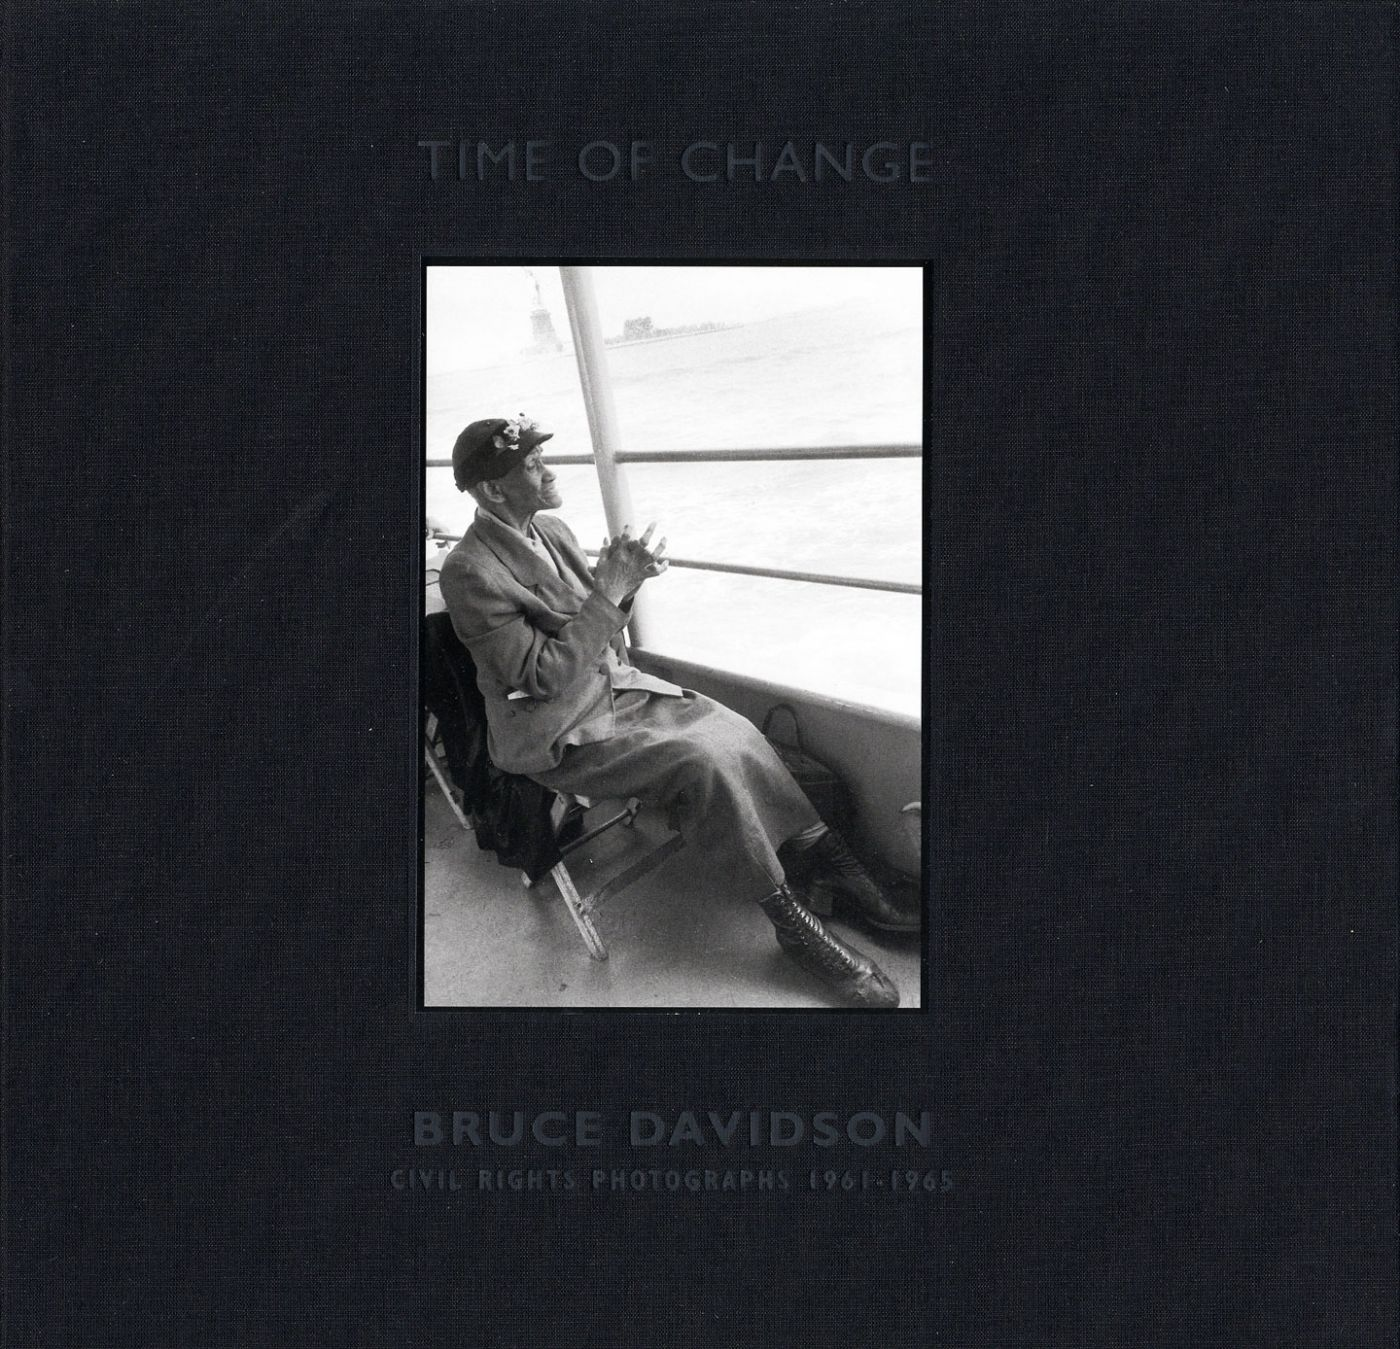 Bruce Davidson: Time of Change, Limited Edition (with Gelatin Silver Print): Civil Rights Photographs 1961-1965